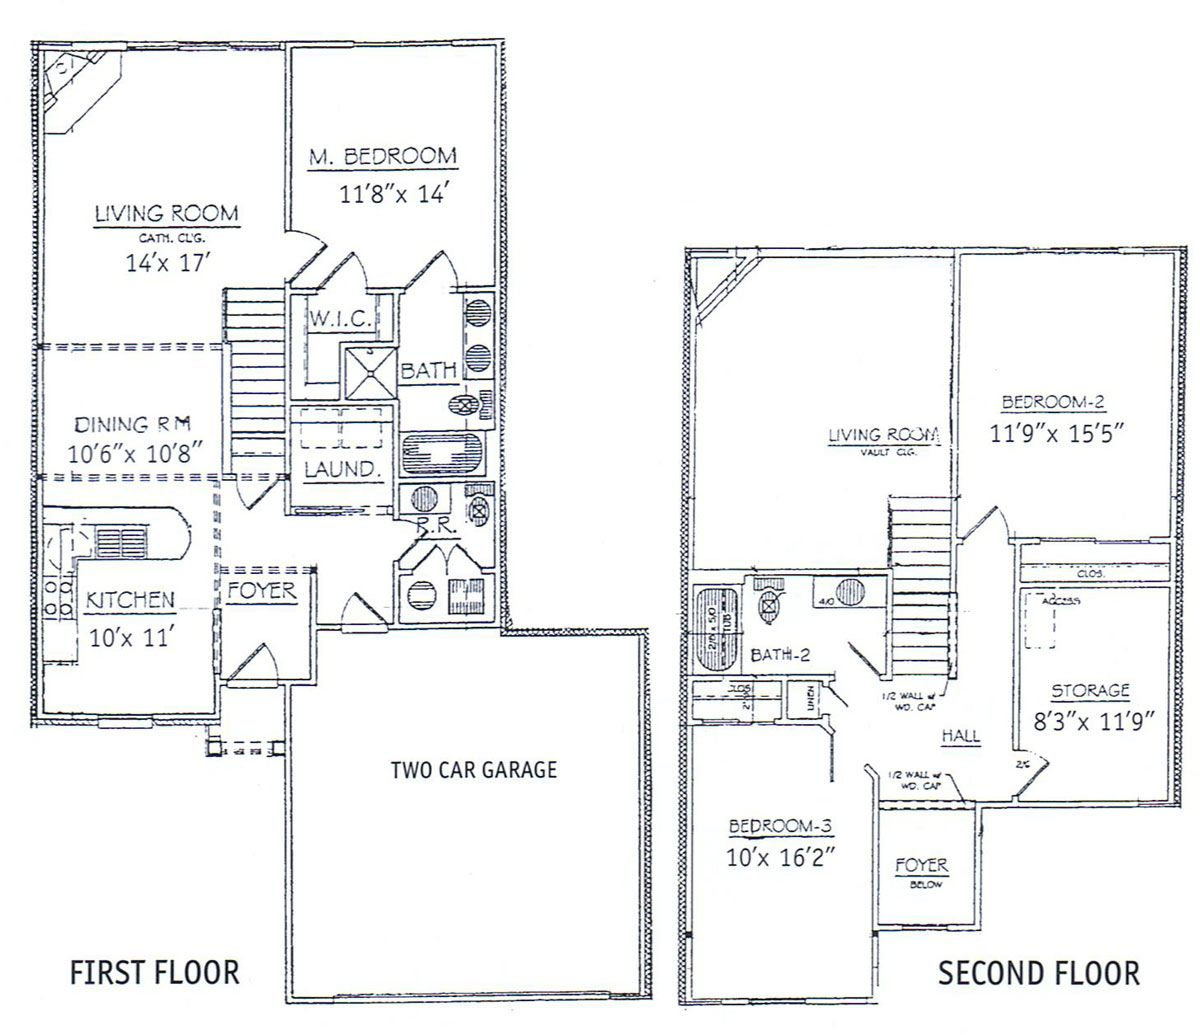 3 bedrooms floor plans 2 story bdrm basement the two two story house plans 3 bedroom house plans master on